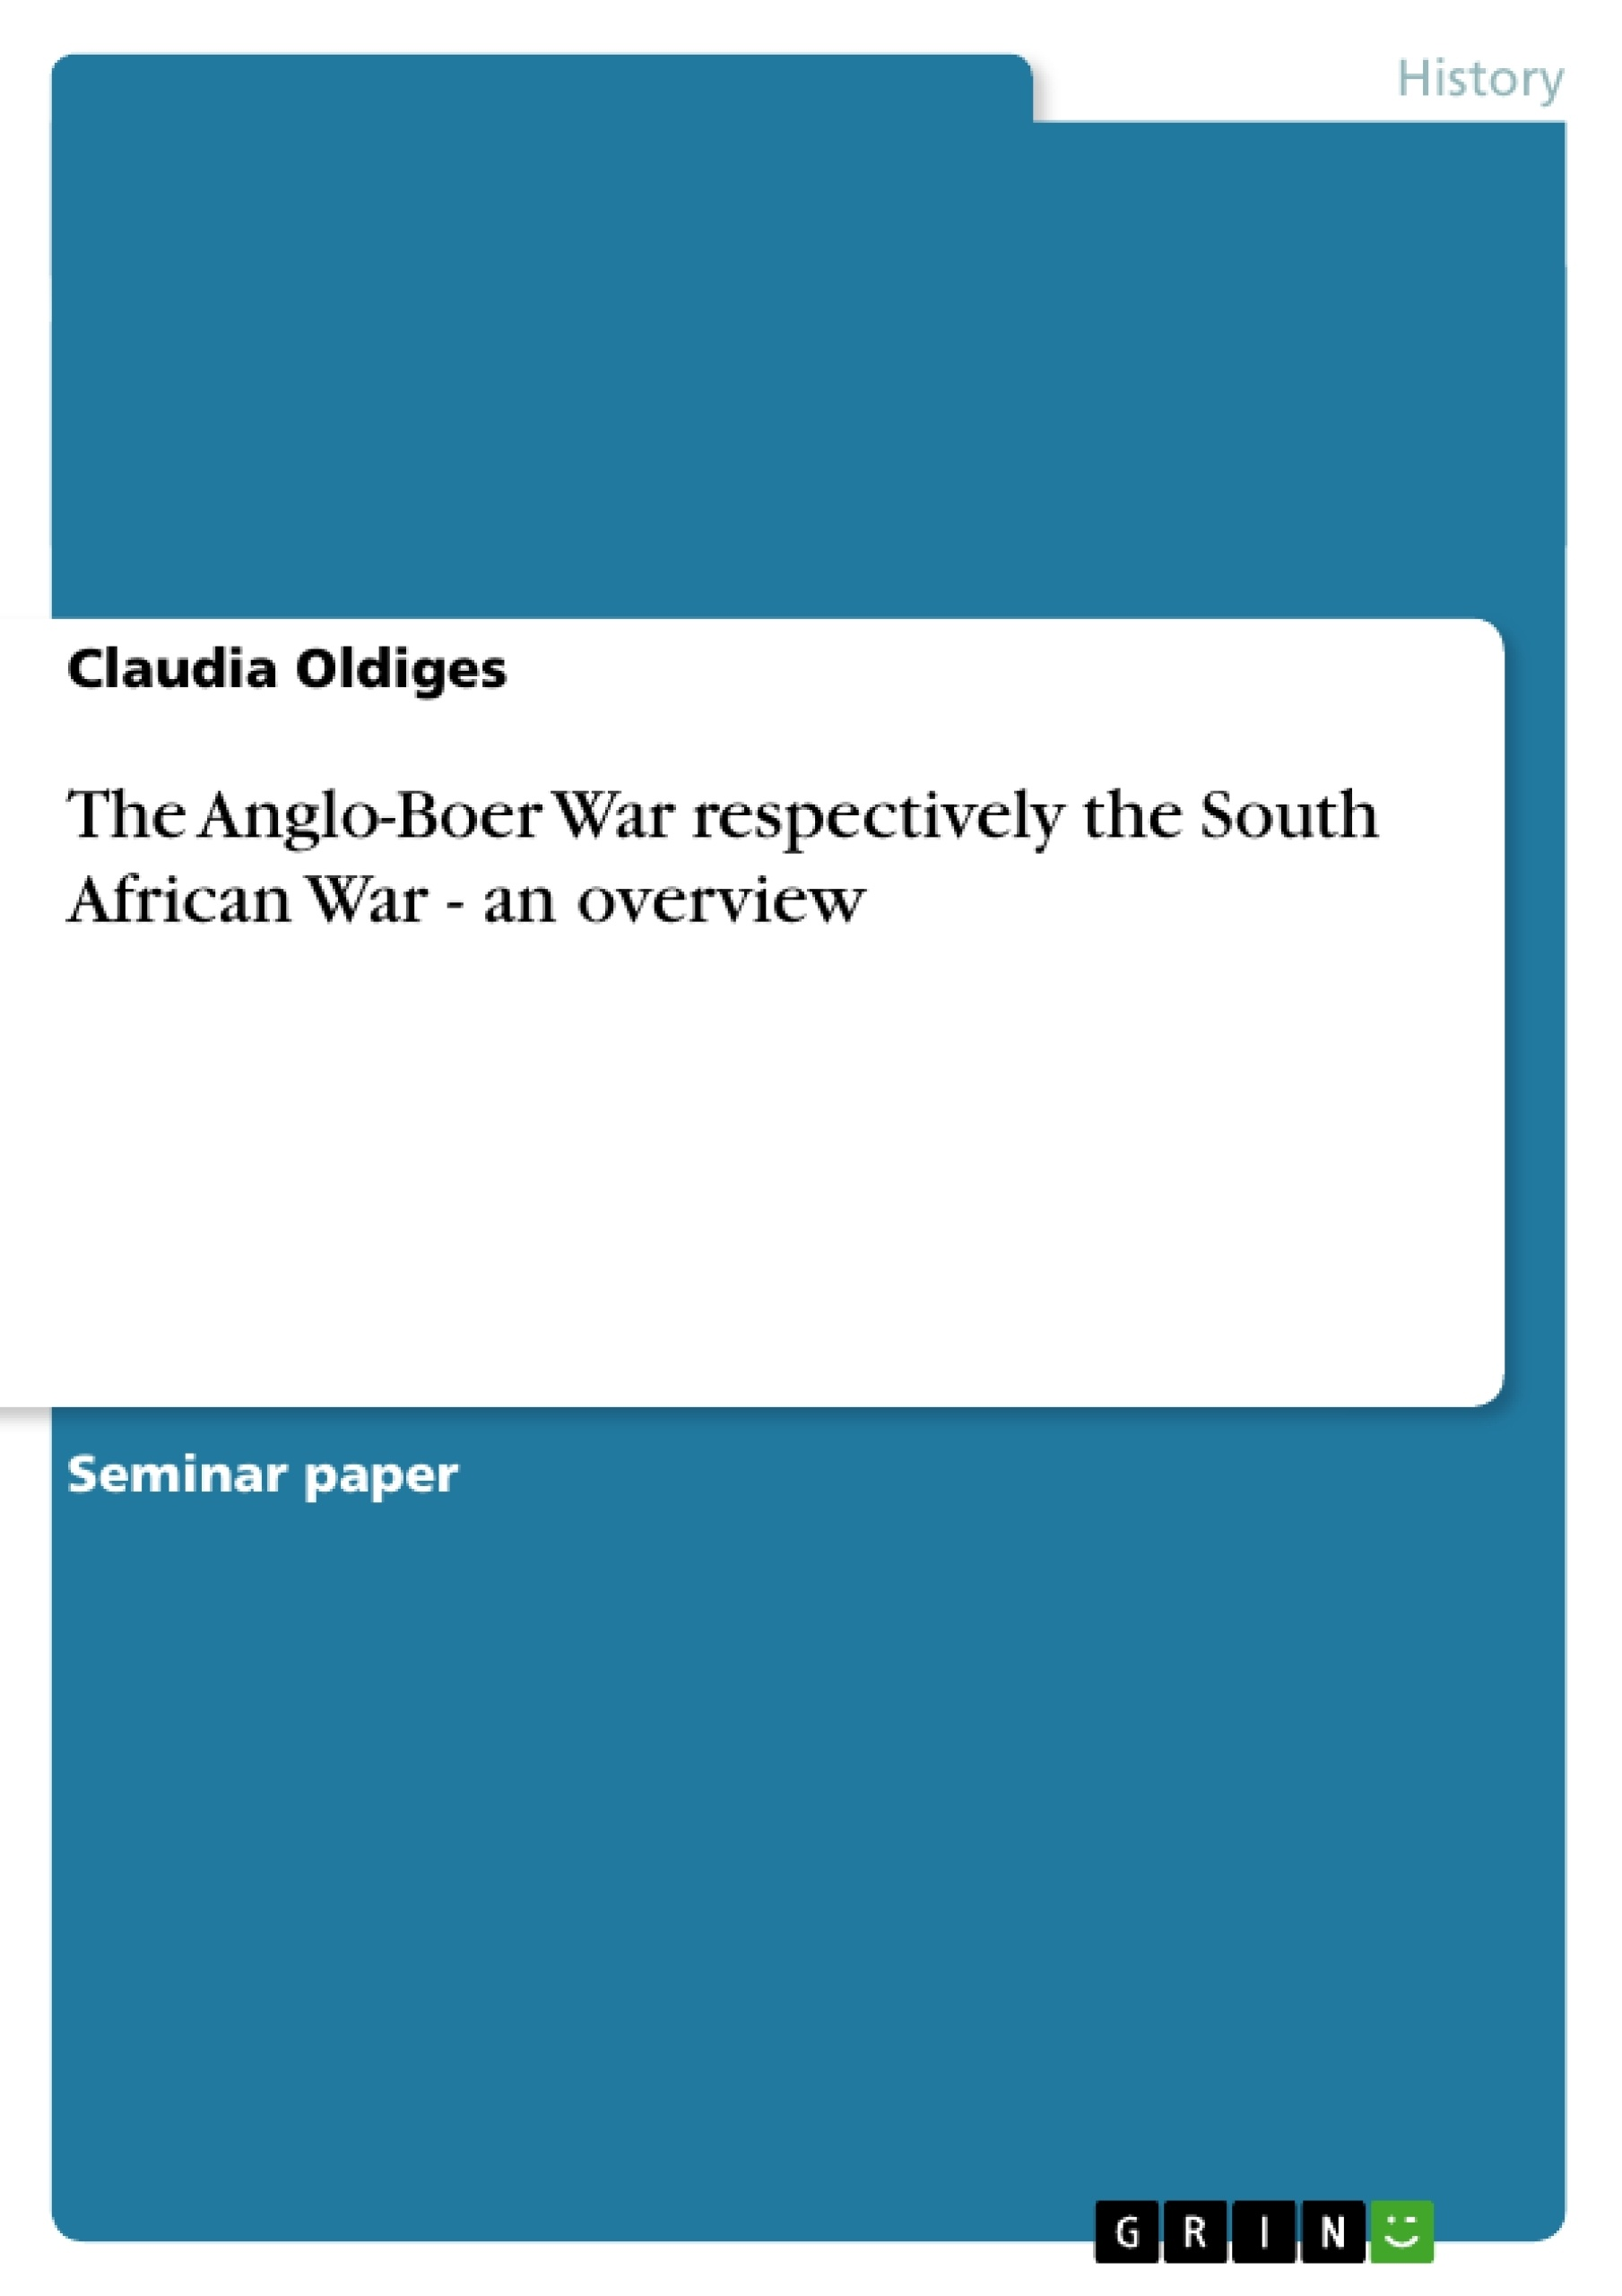 Title: The Anglo-Boer War respectively the South African War - an overview